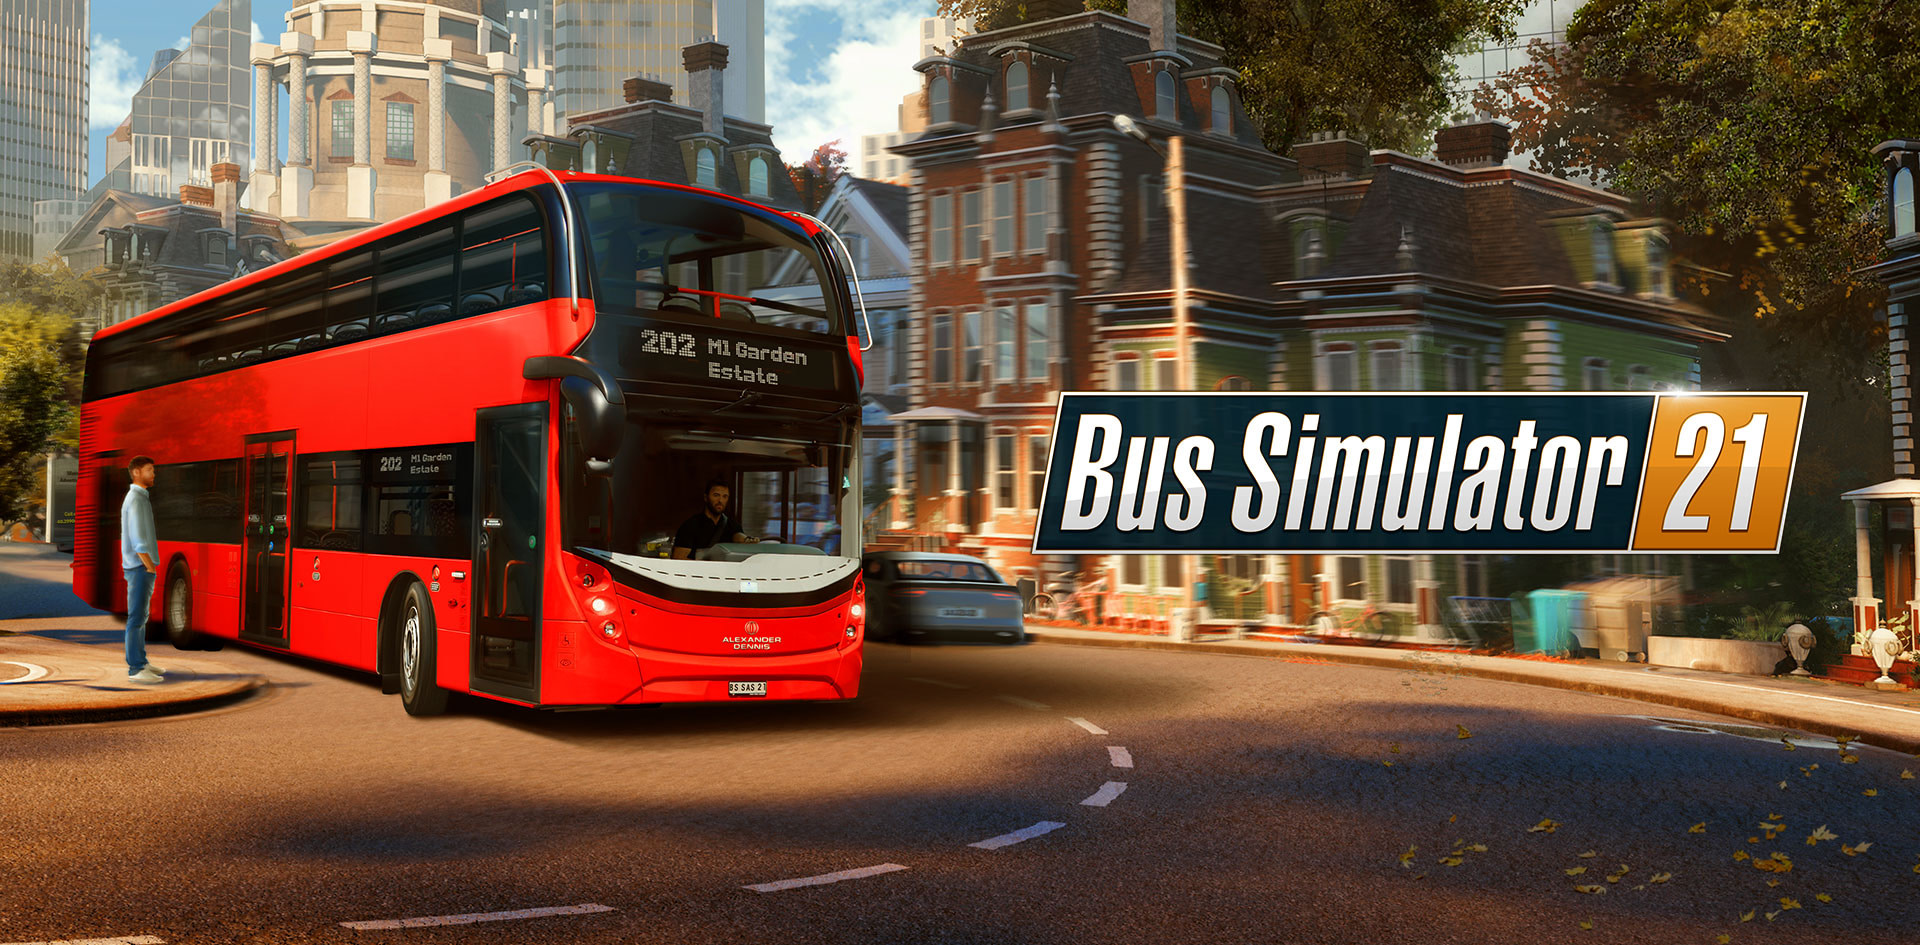 bus simulator 21 logo